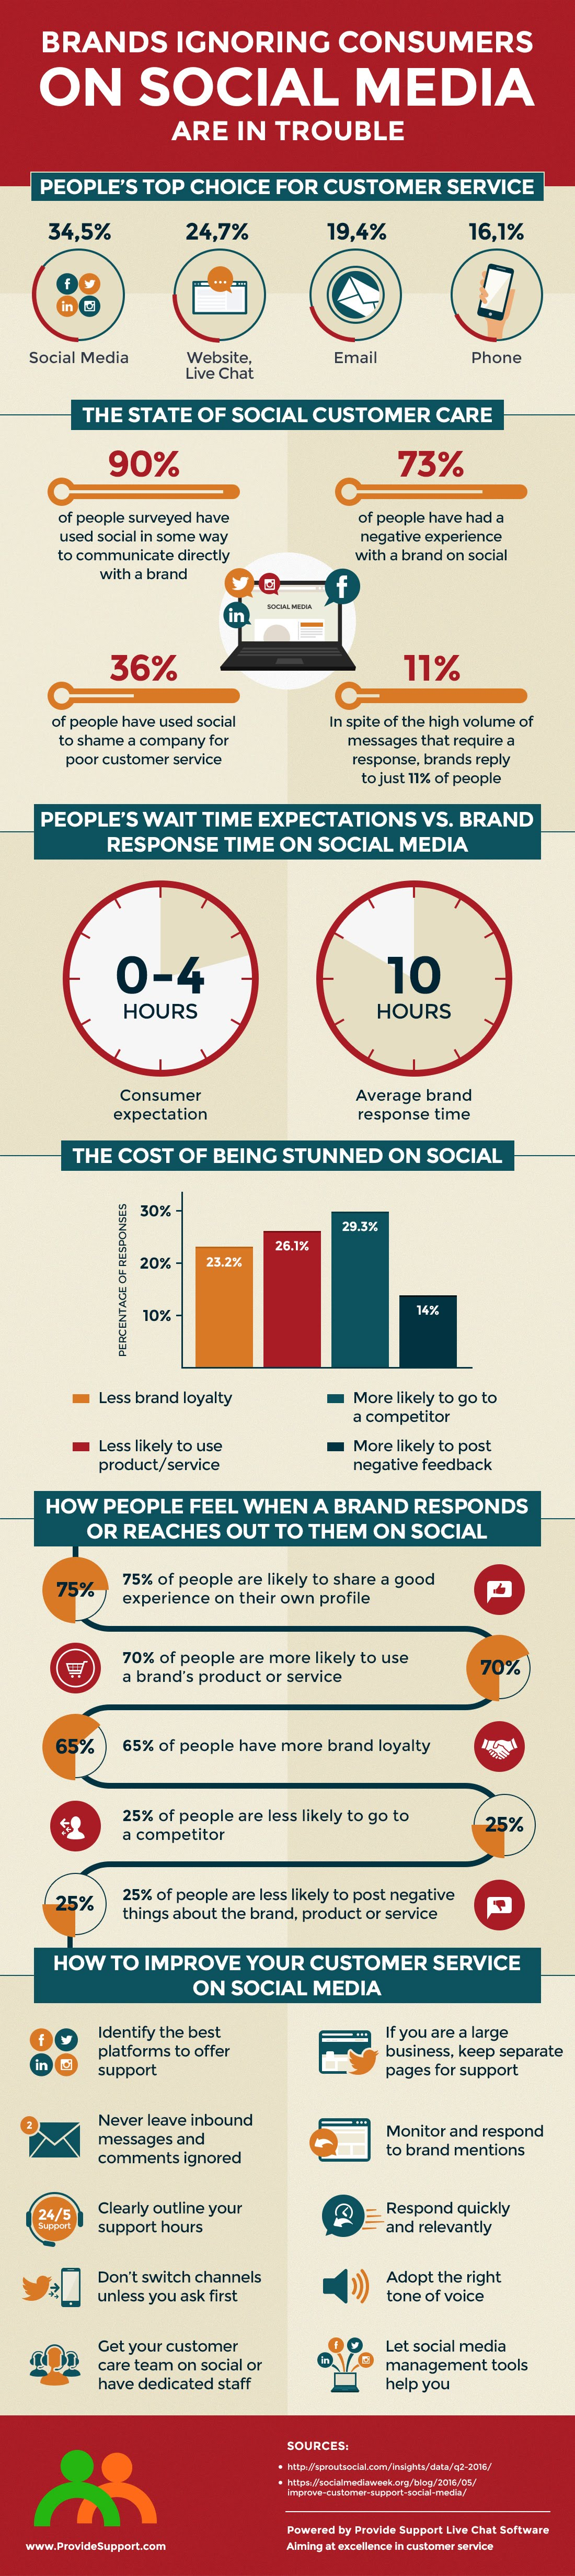 Brands Ignoring Consumers on Social Media are in Trouble [Infographic] | Social Media Today